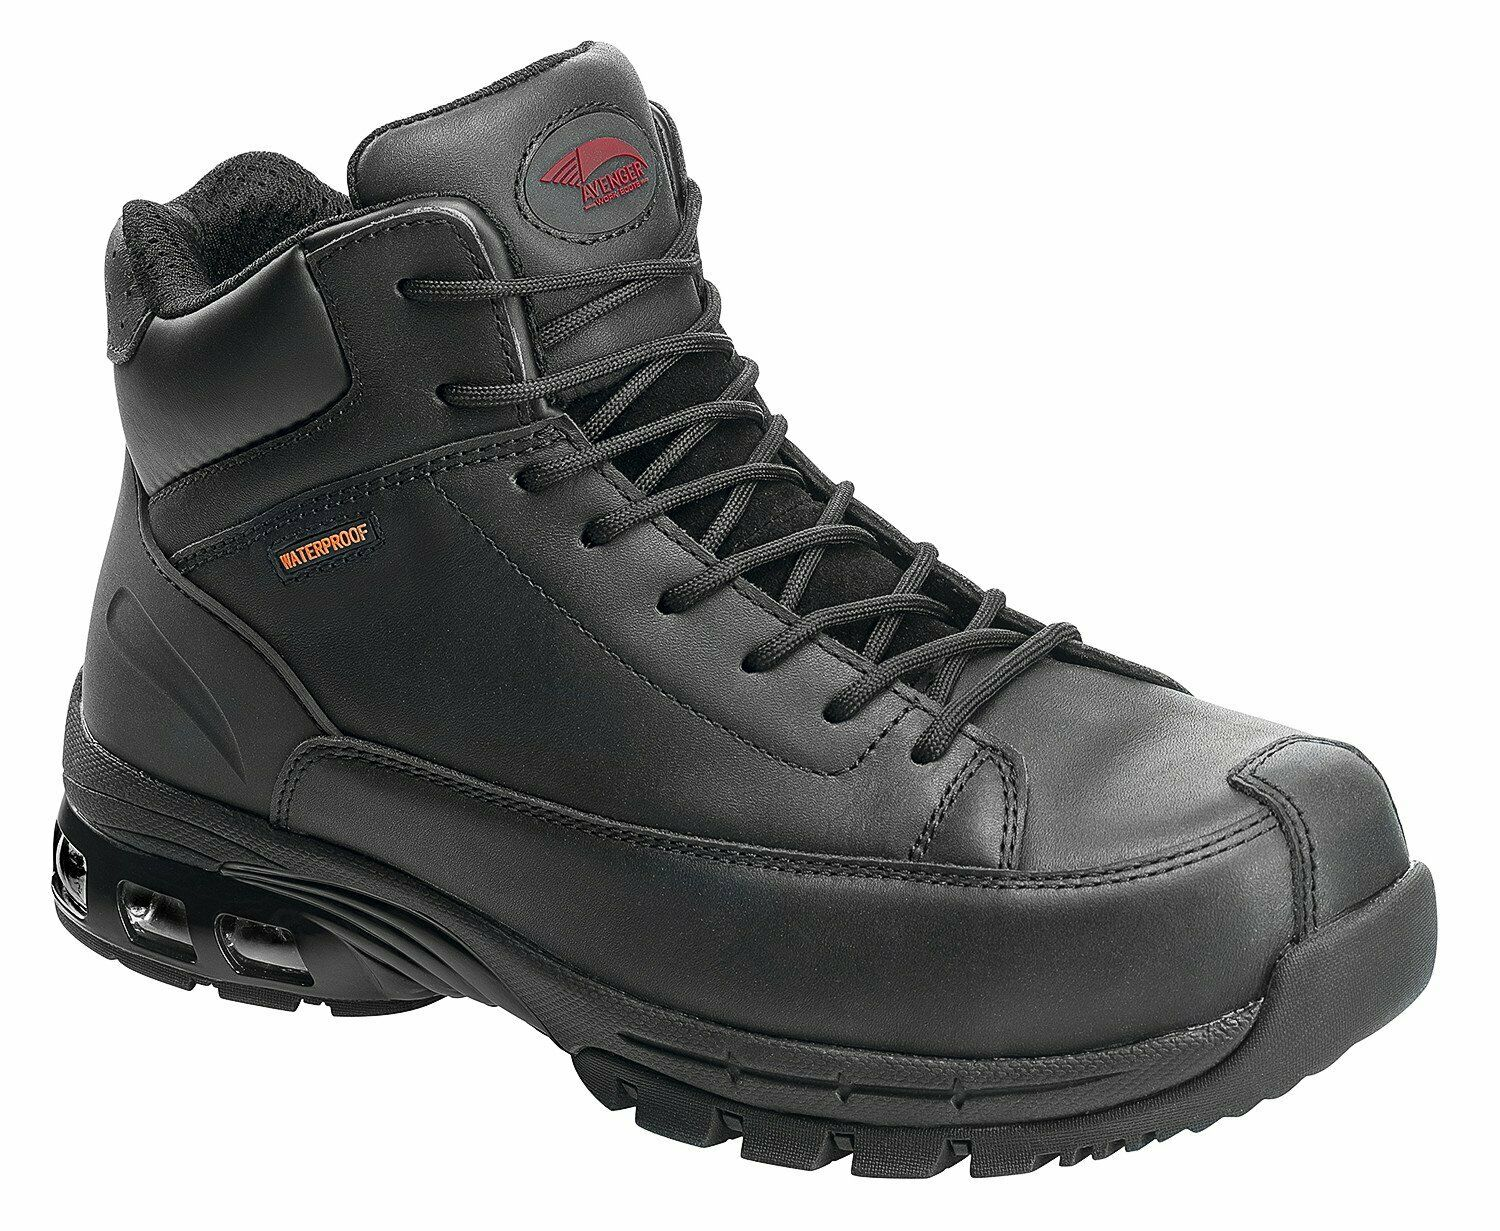 Avenger Mens Composite Toe Waterproof EH Hiker M Black Leather Boots M 11